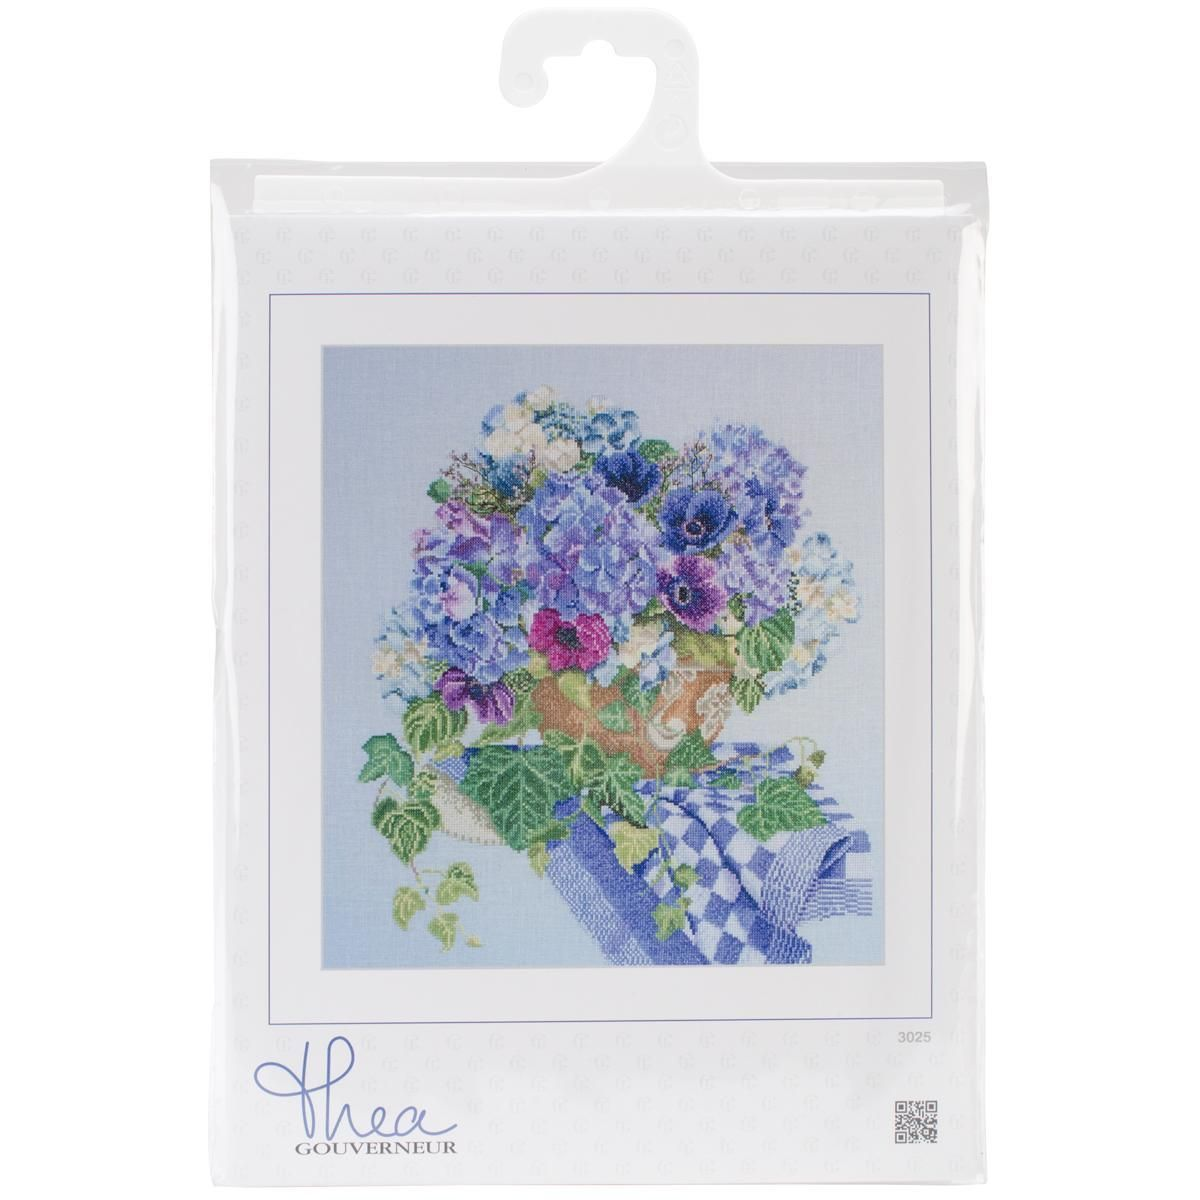 Hydrangea-Anemone On Aida Counted Cross Stitch Kit - 14-1/2 X16-1/2 16 Count